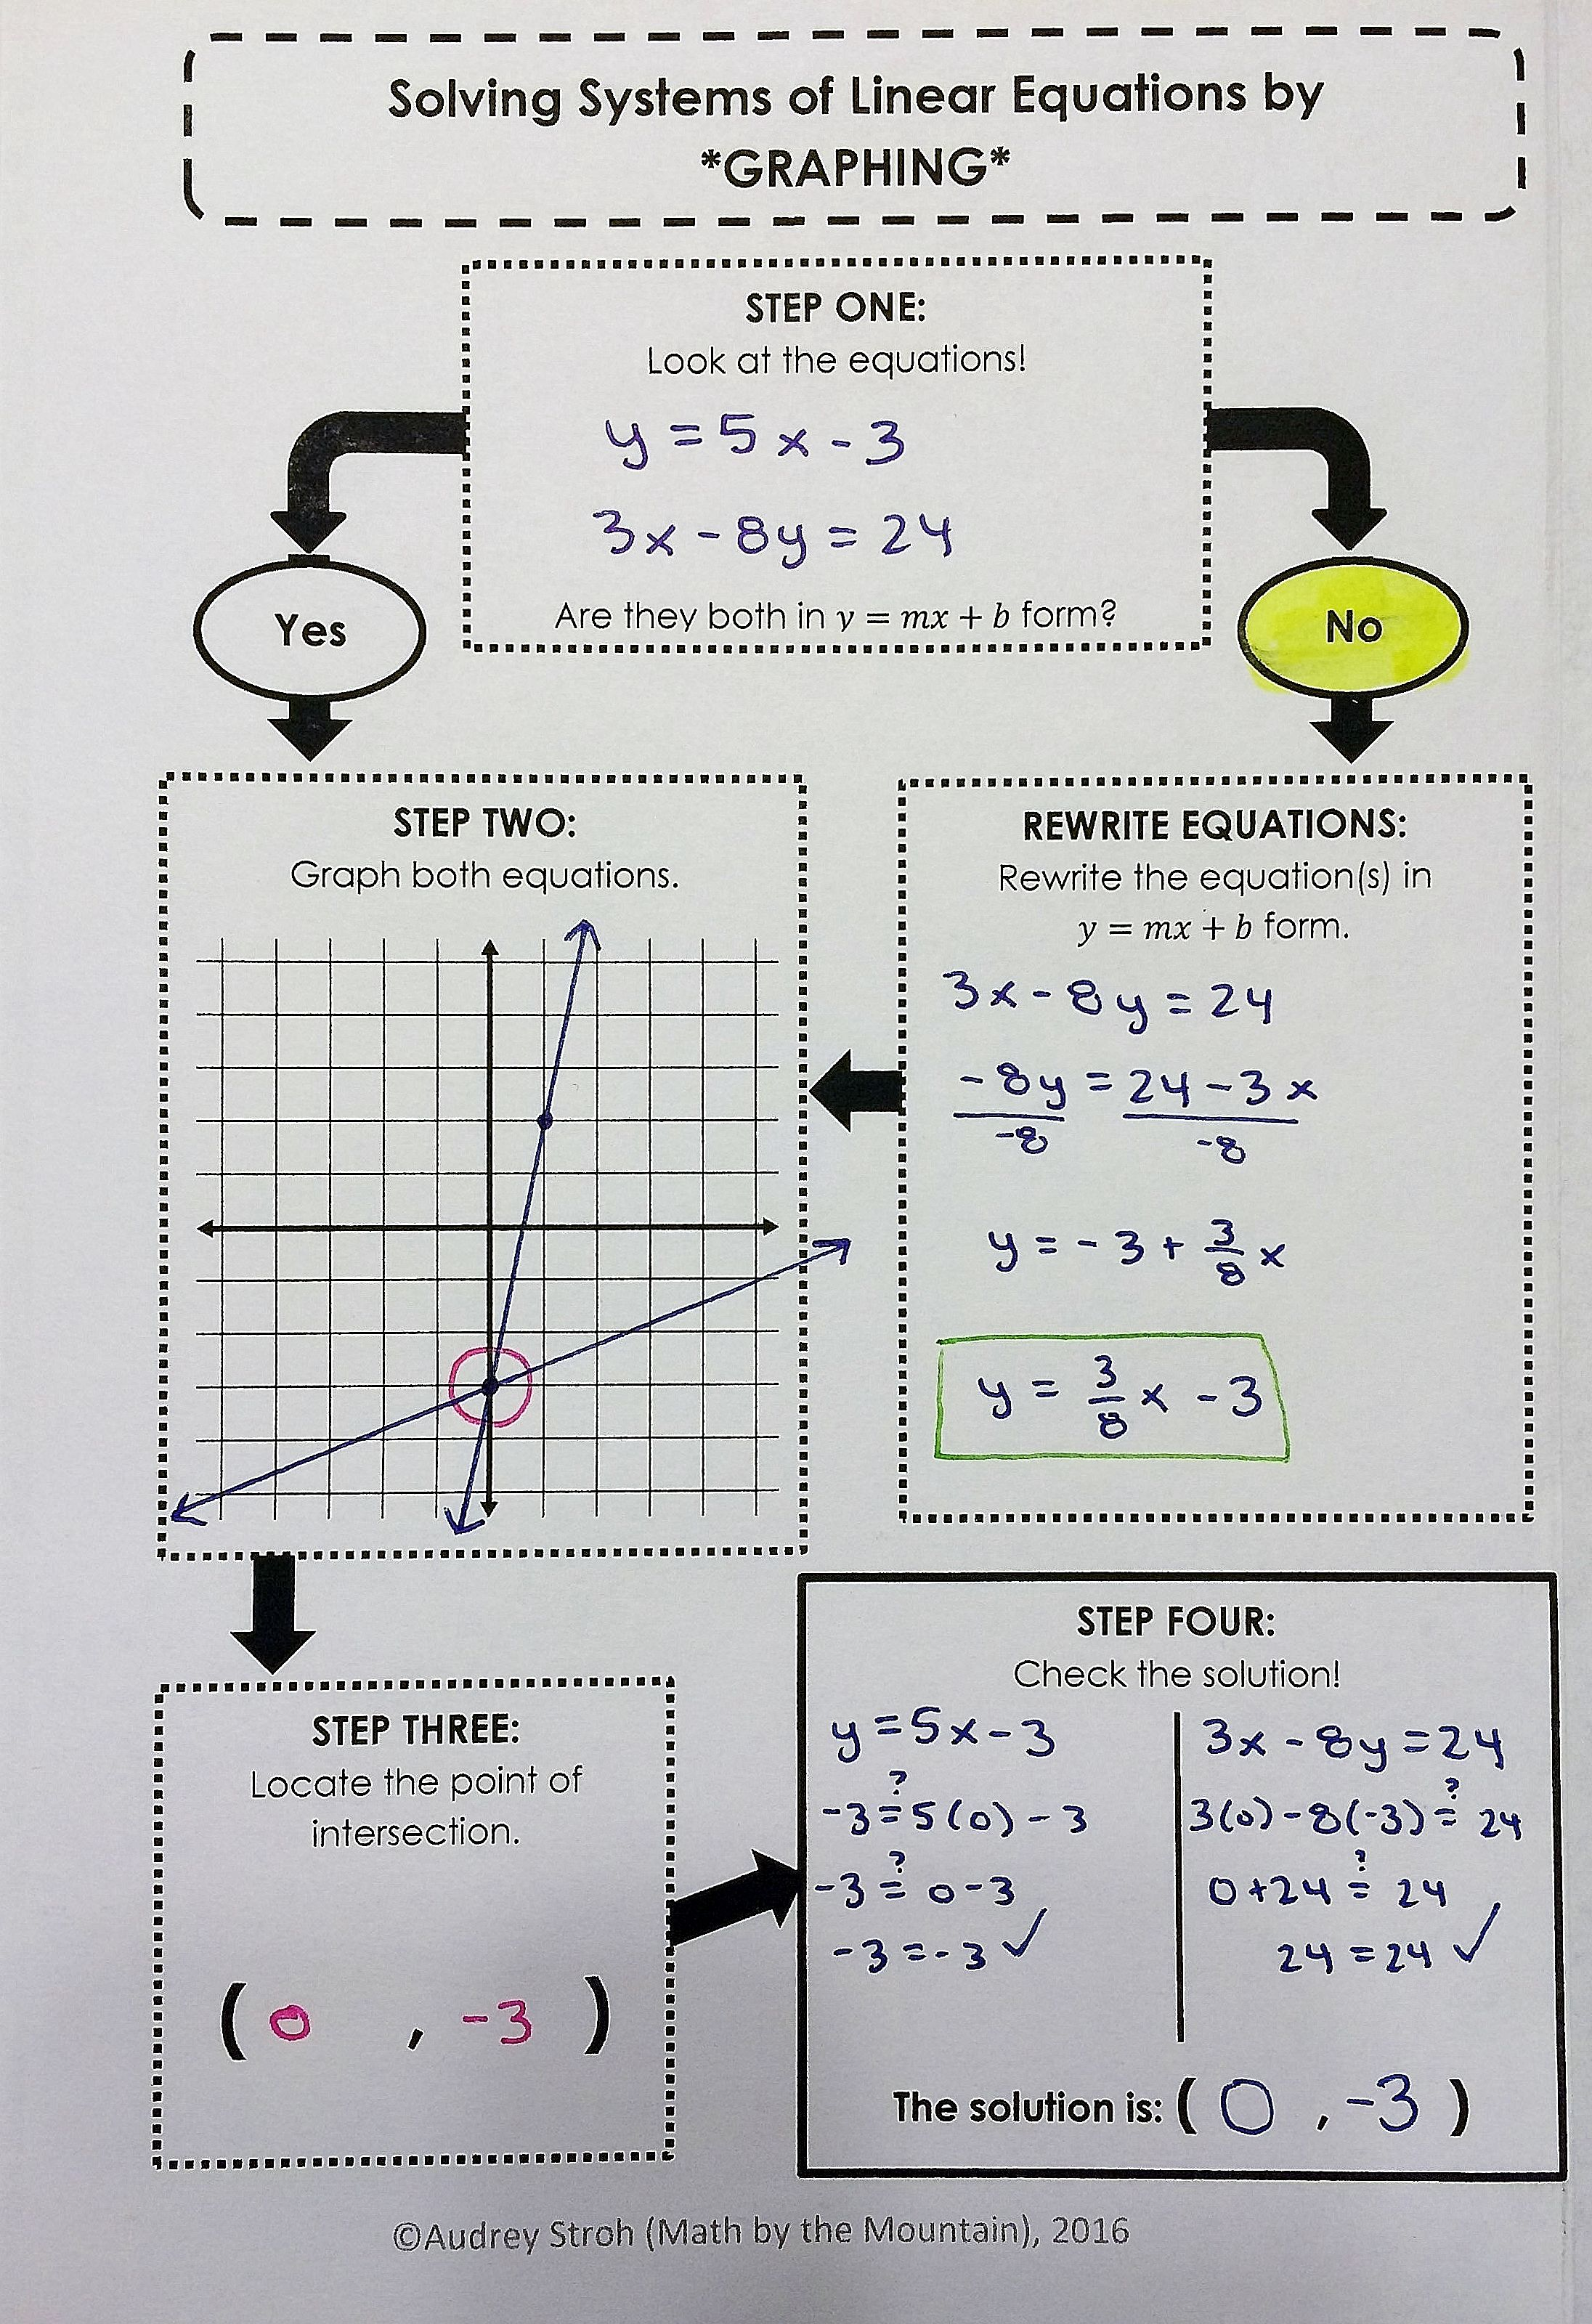 solving systems of linear equations by graphing *flowchart* graphic